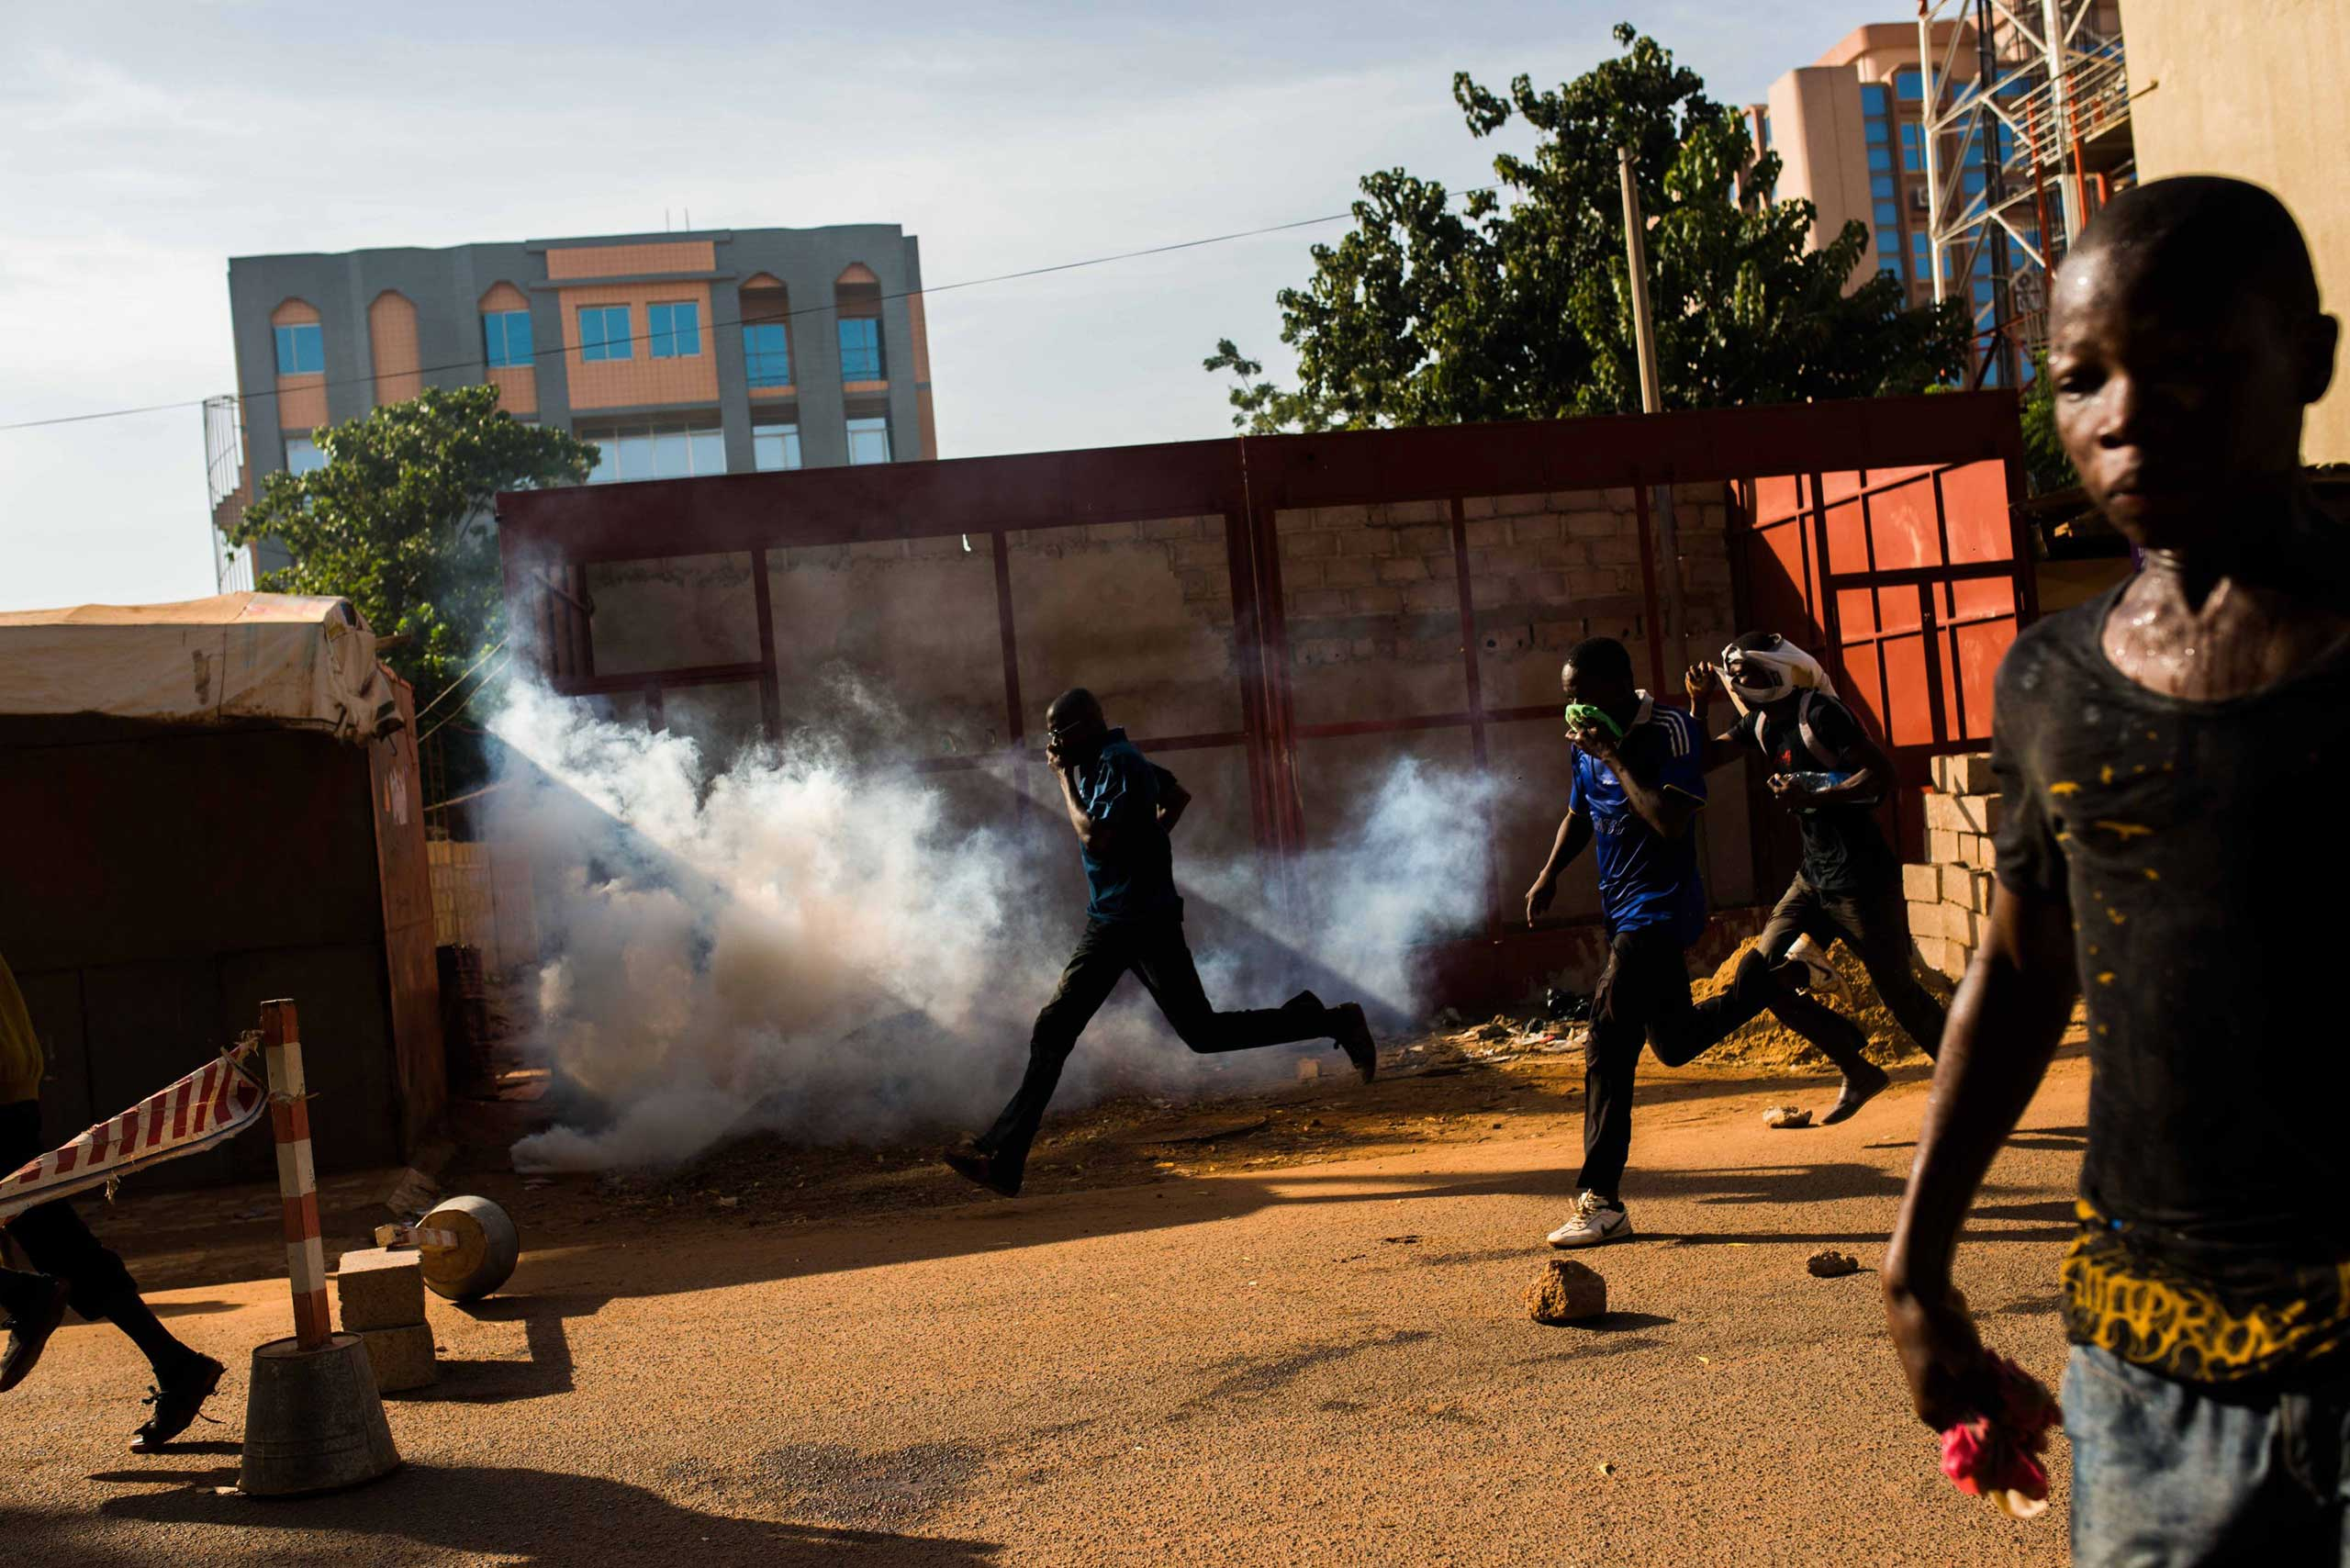 Protestors on the rampage near the  parliament building in Burkina Faso as people protest  against their longtime president Blaise Compaore  who seeks another term in Ouagadougou, Burkina Faso, Oct. 30, 2014.